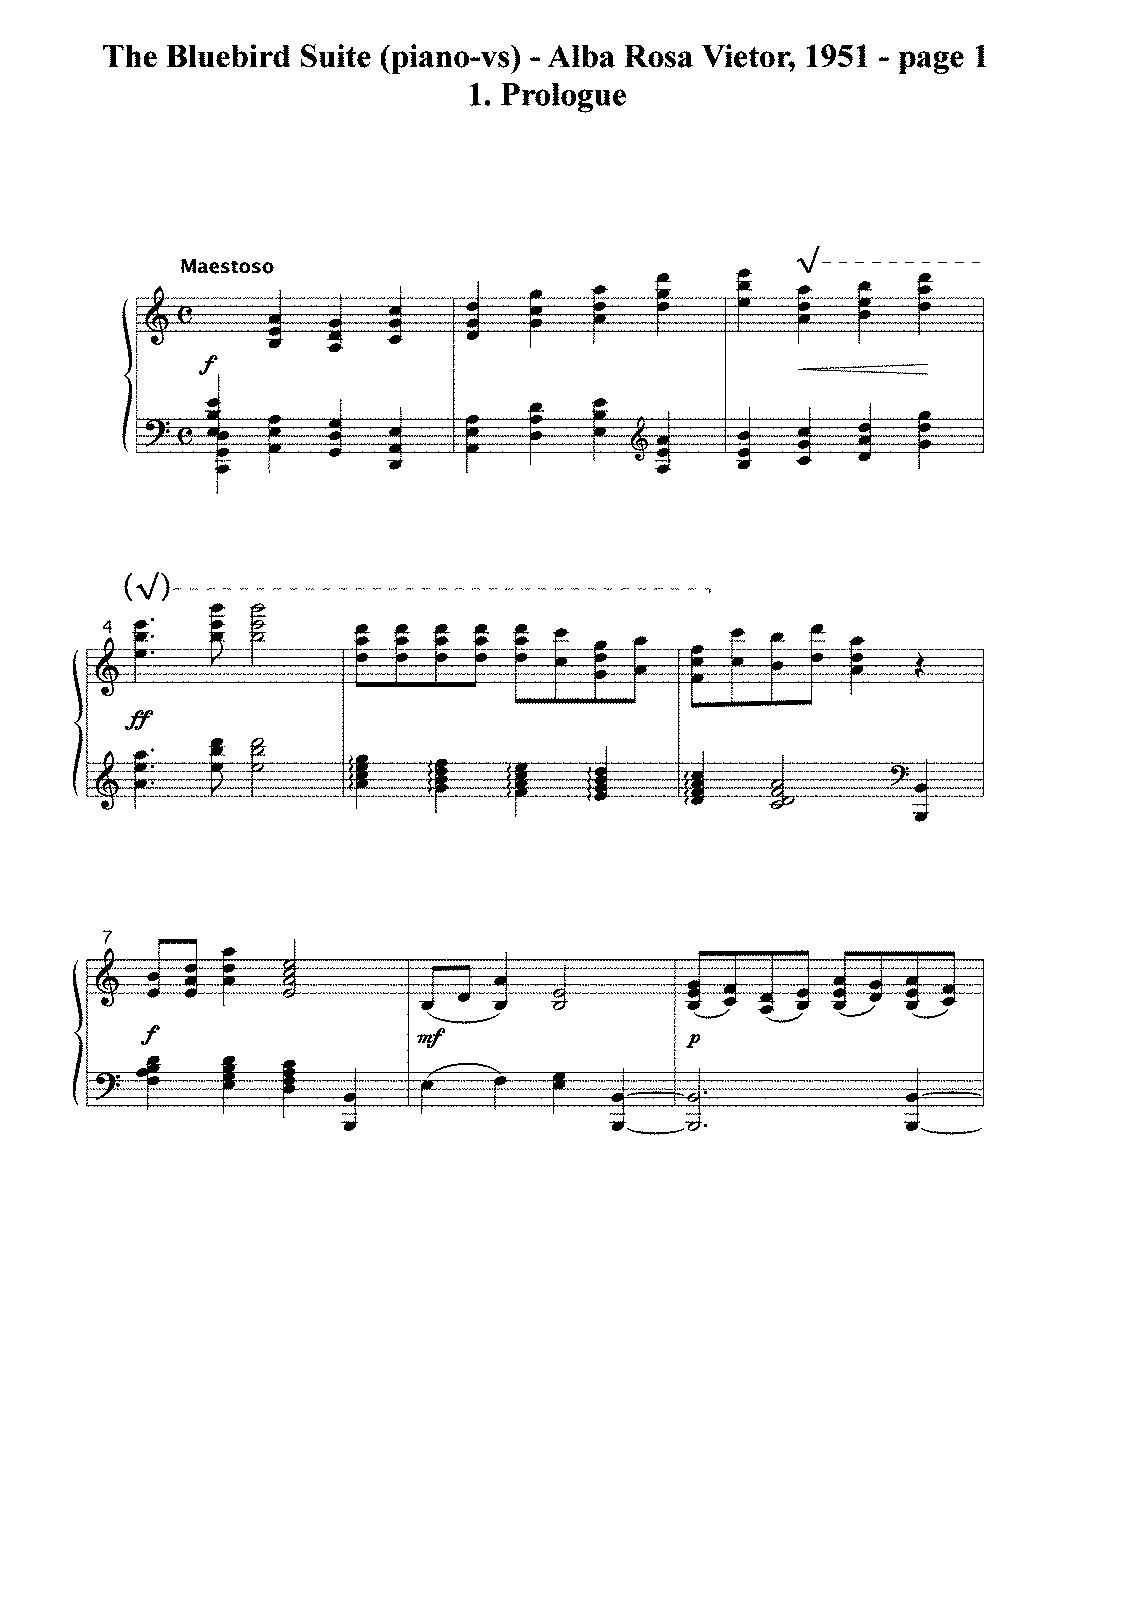 PMLP368073-BLUEBIRD PIANO-VS 01 Prologue.pdf